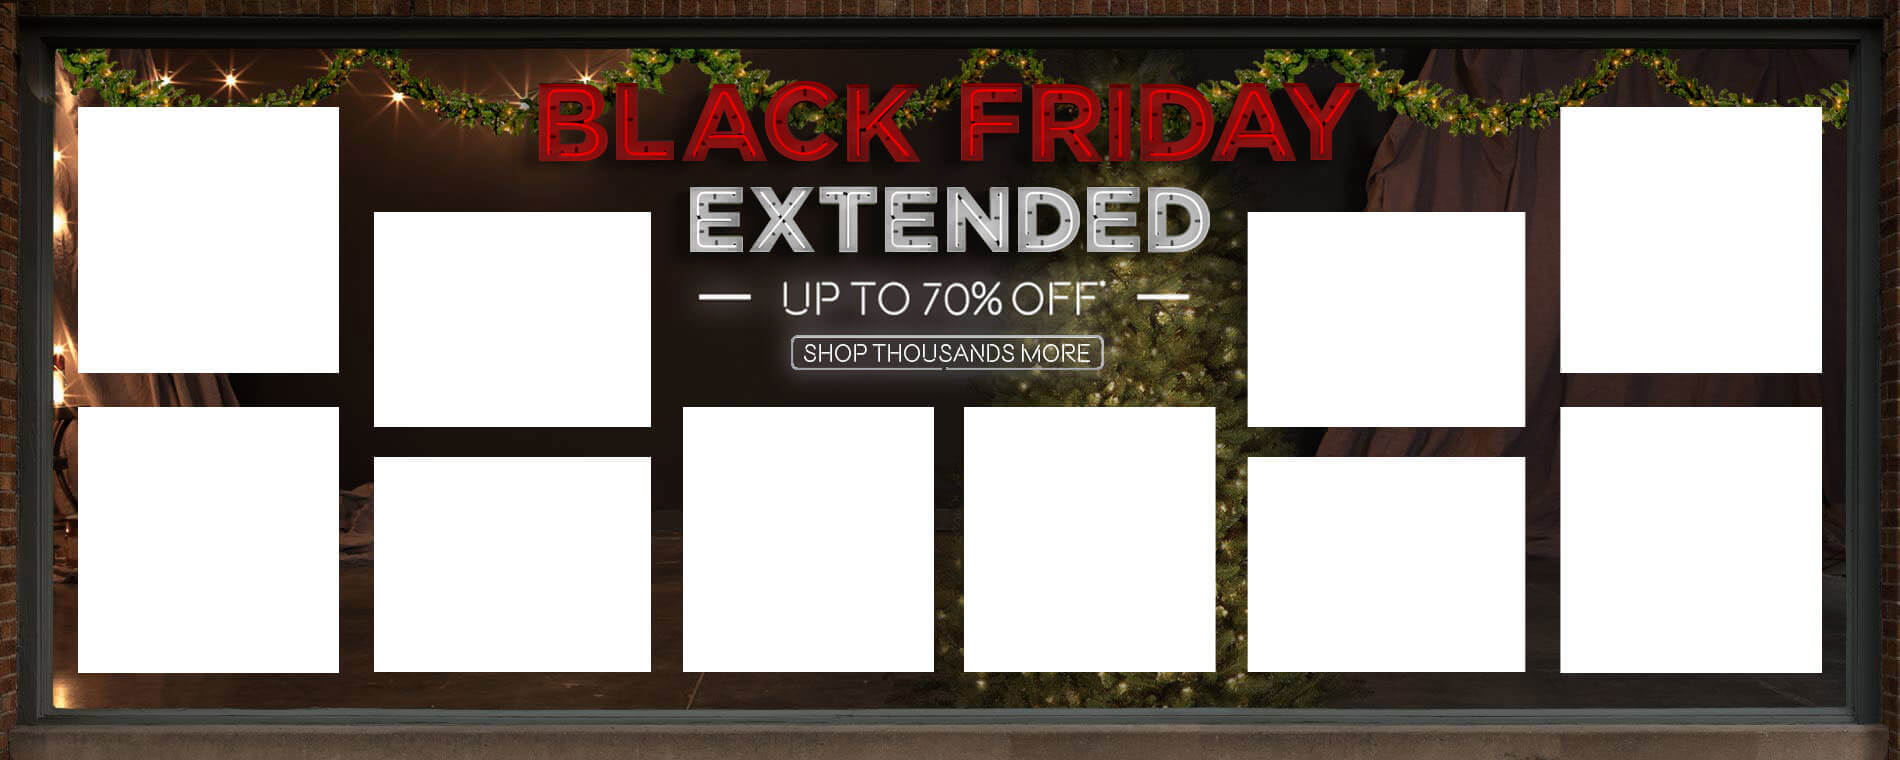 Black Friday Extended. Up to 70% Off. Shop Thousands More.